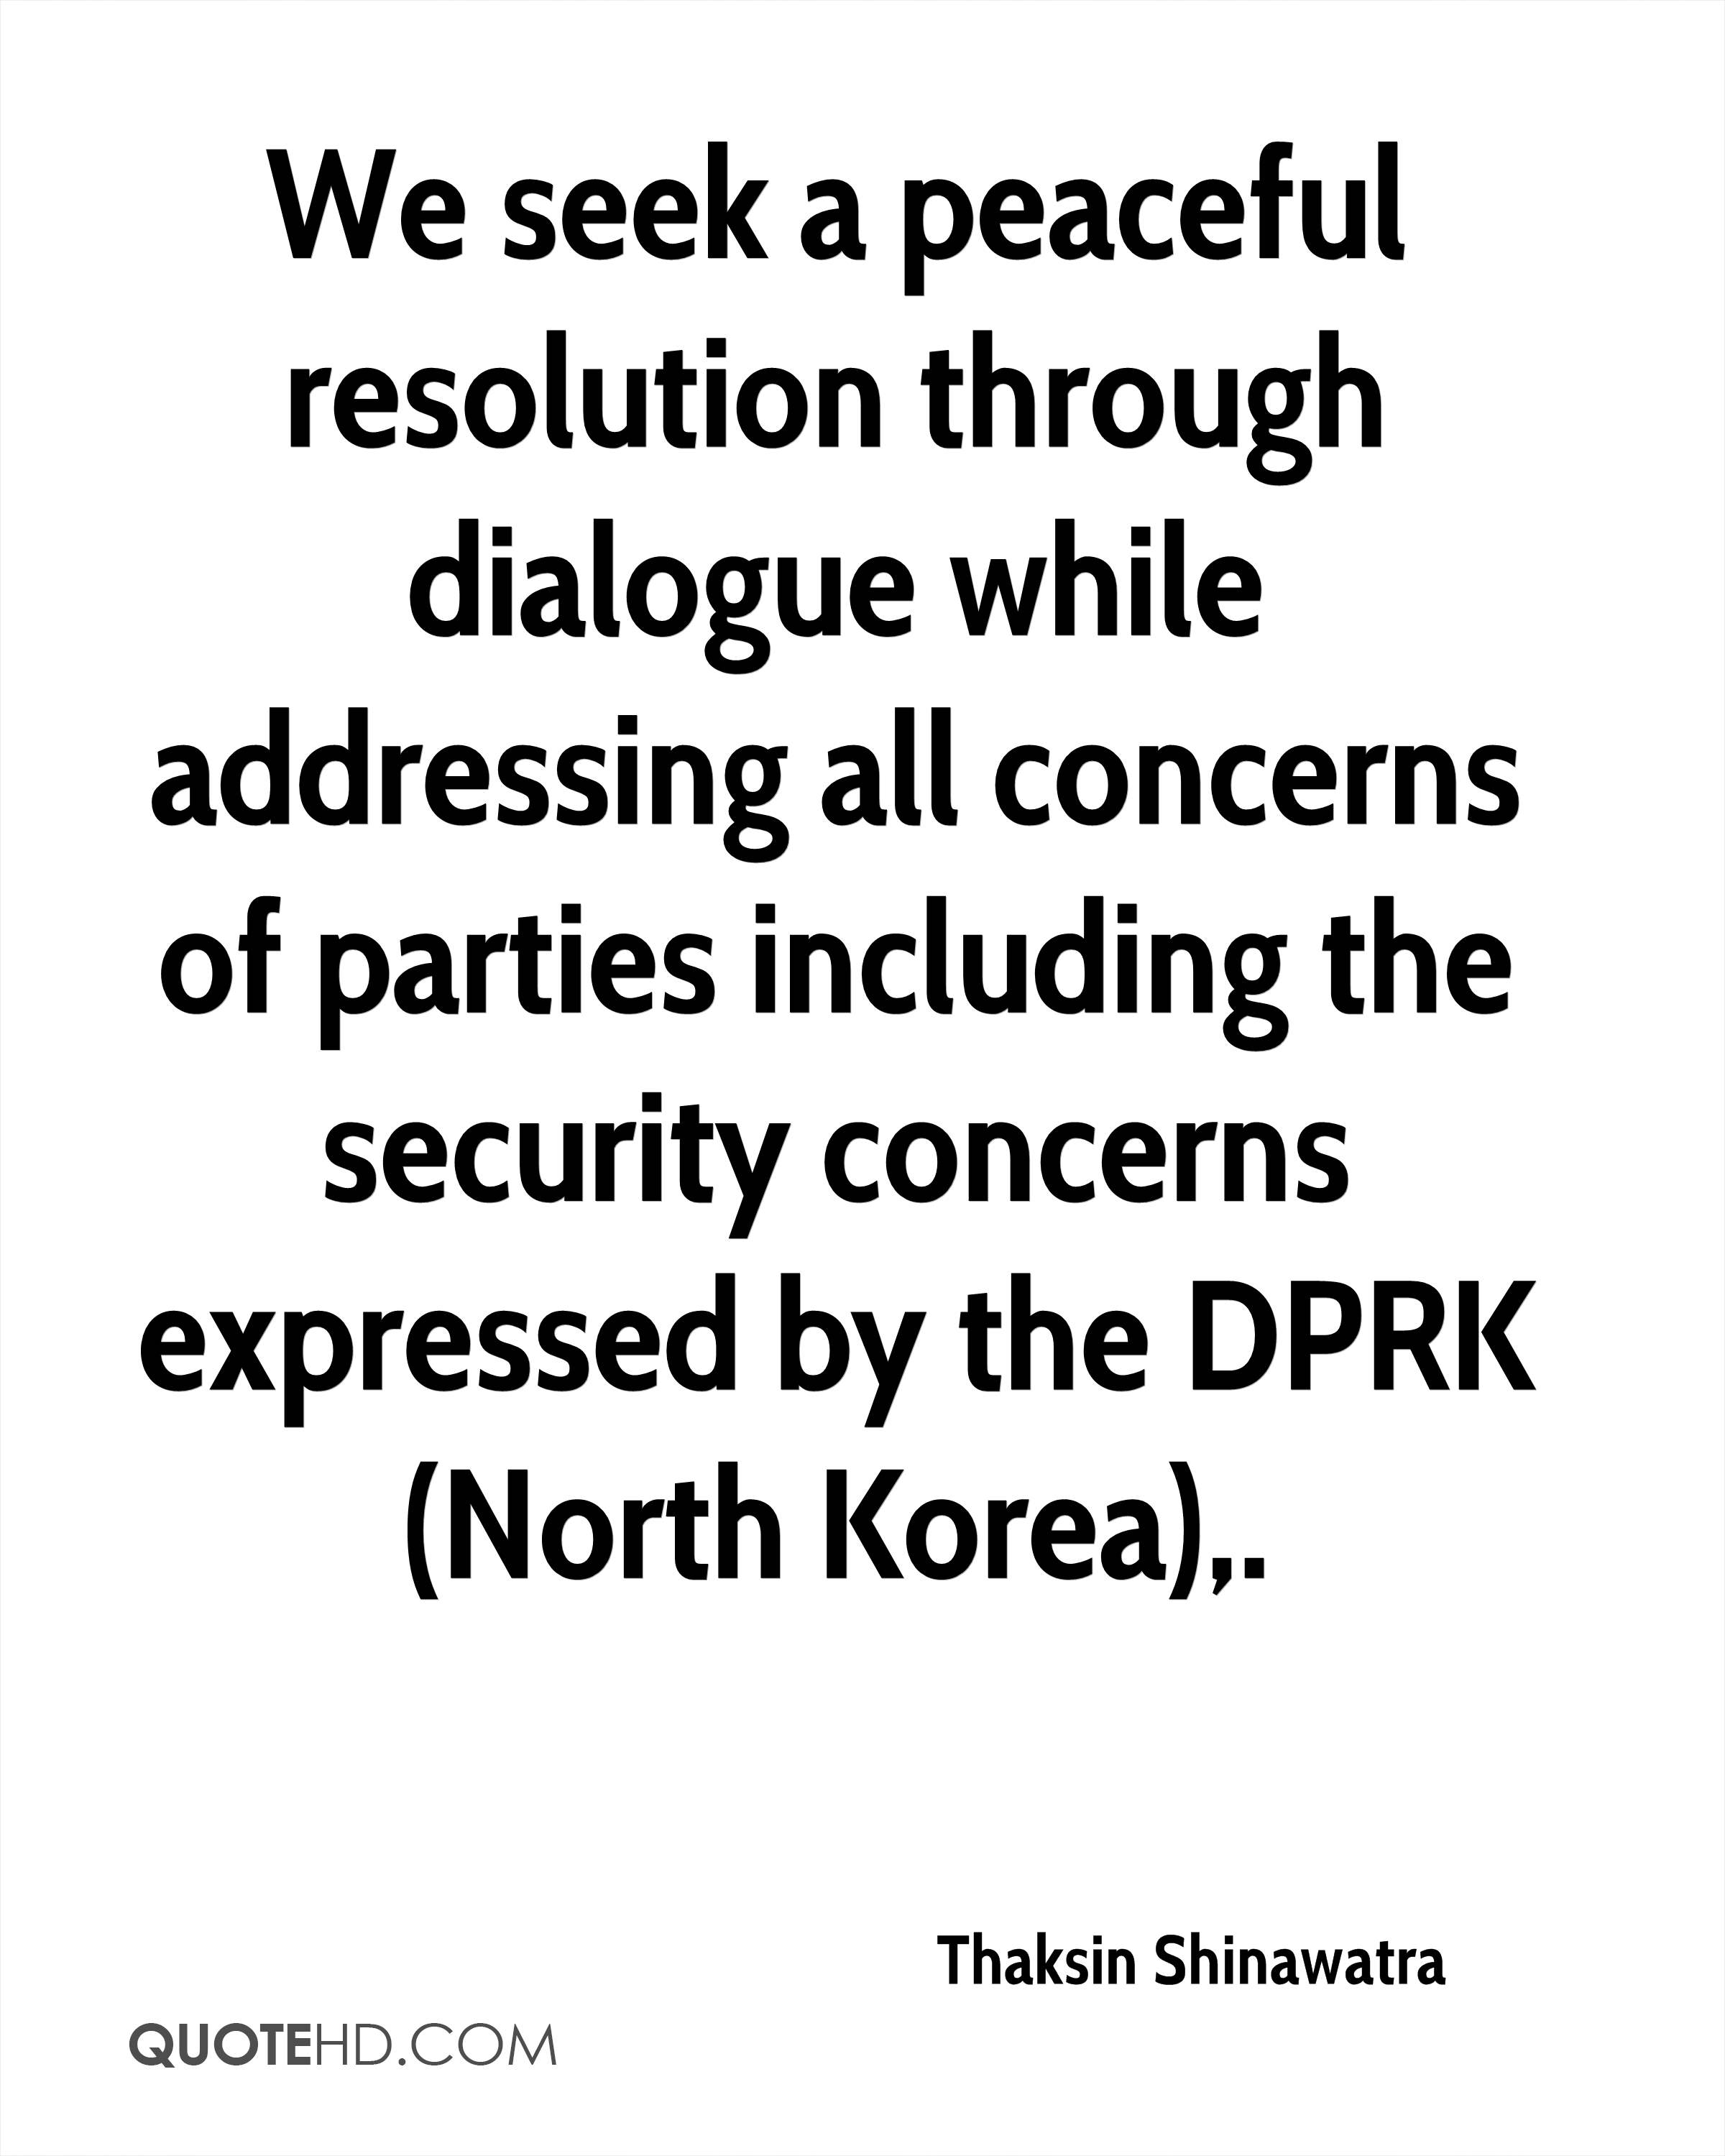 We seek a peaceful resolution through dialogue while addressing all concerns of parties including the security concerns expressed by the DPRK (North Korea).